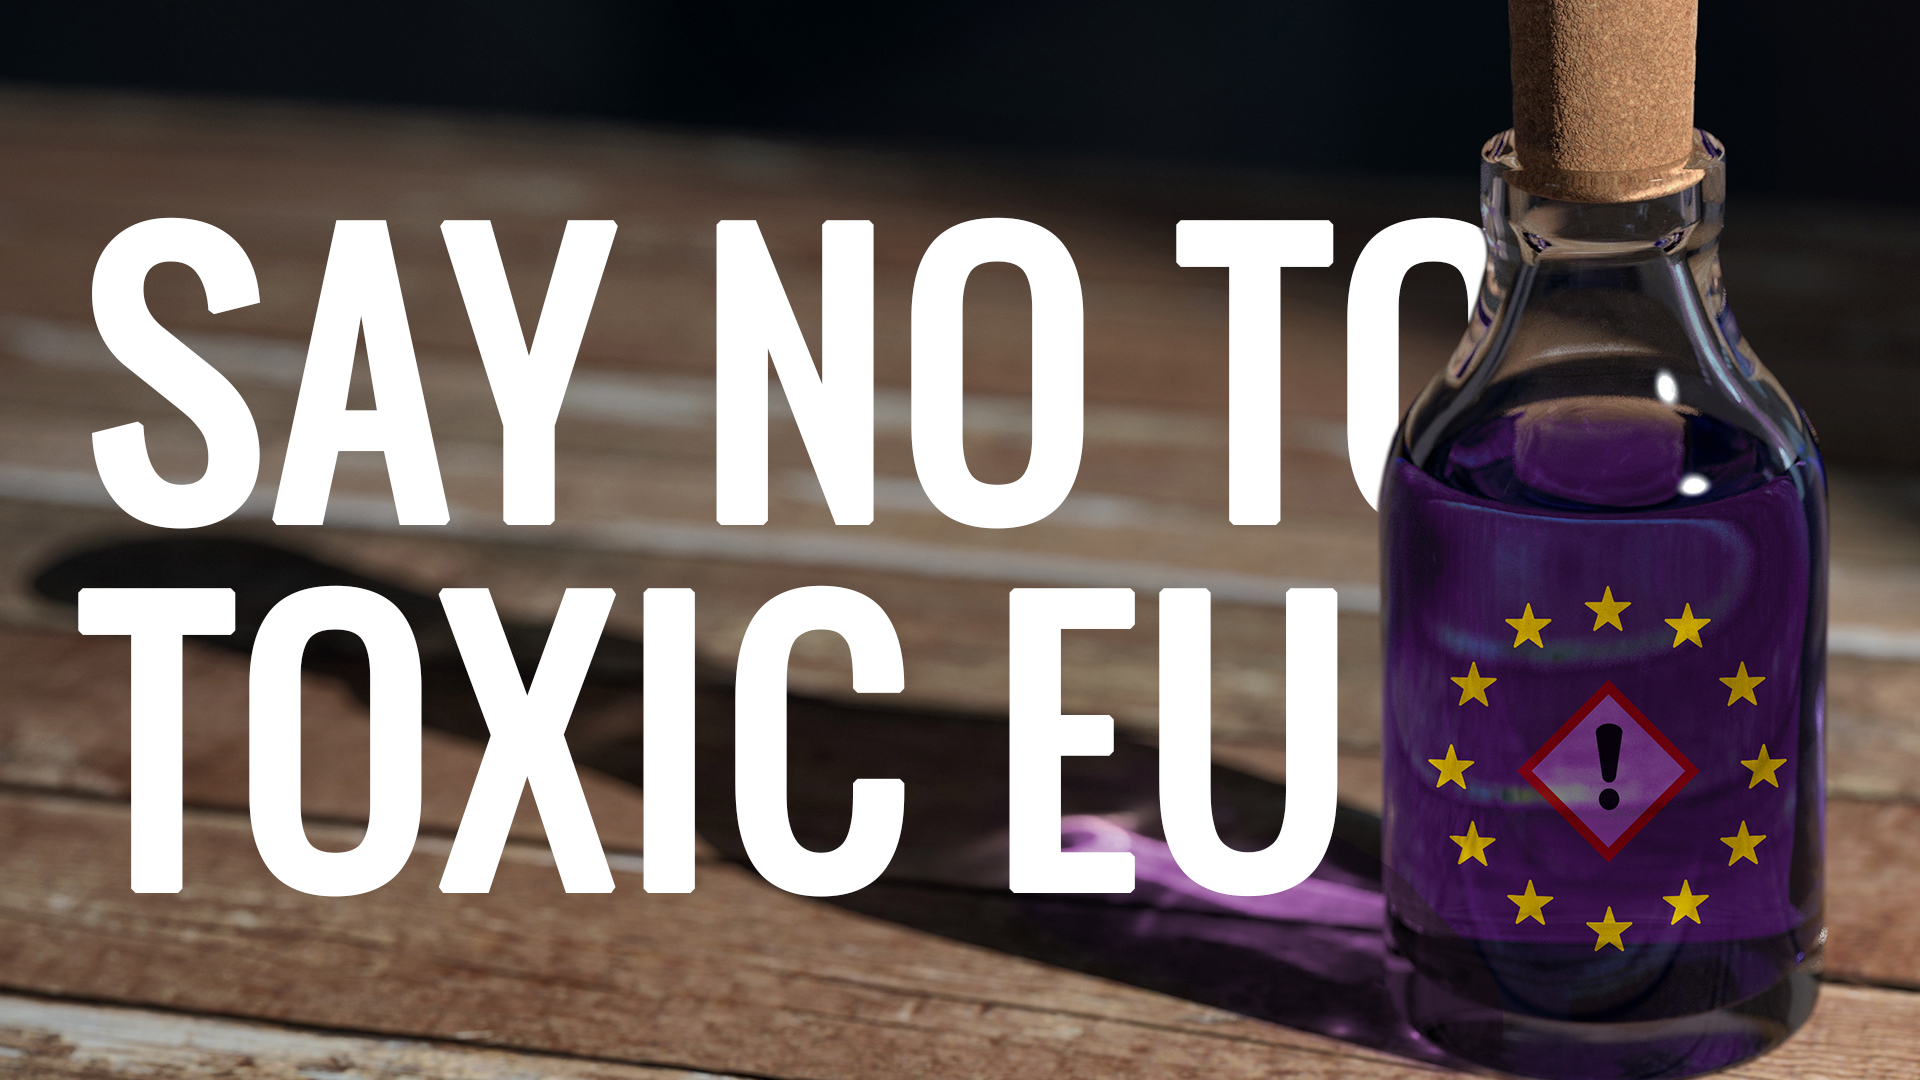 Say no to Toxic EU